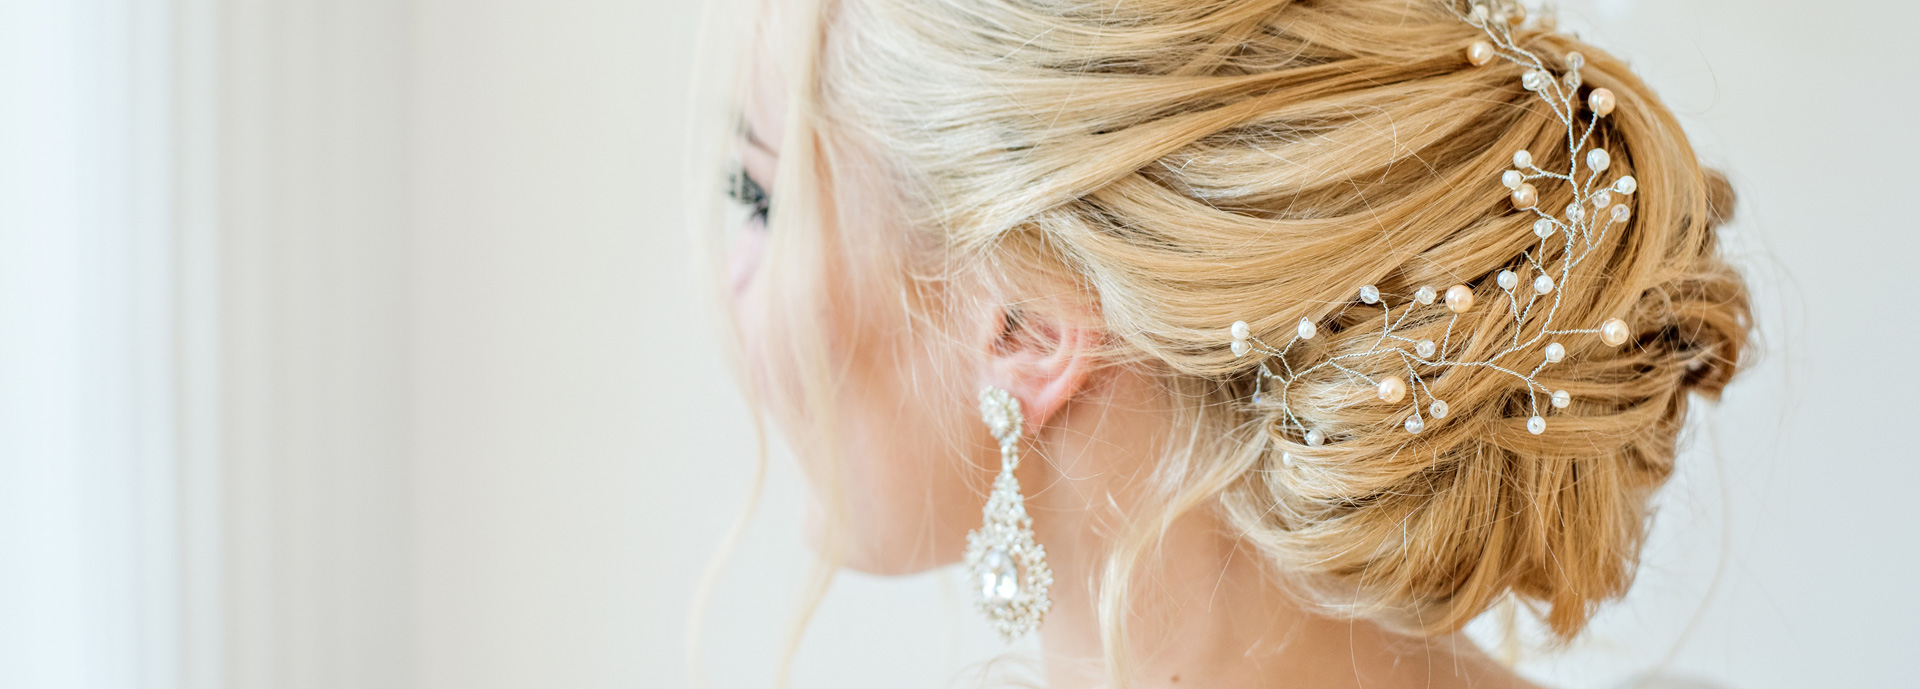 Wedding Hair and Makeup Oxfordshire